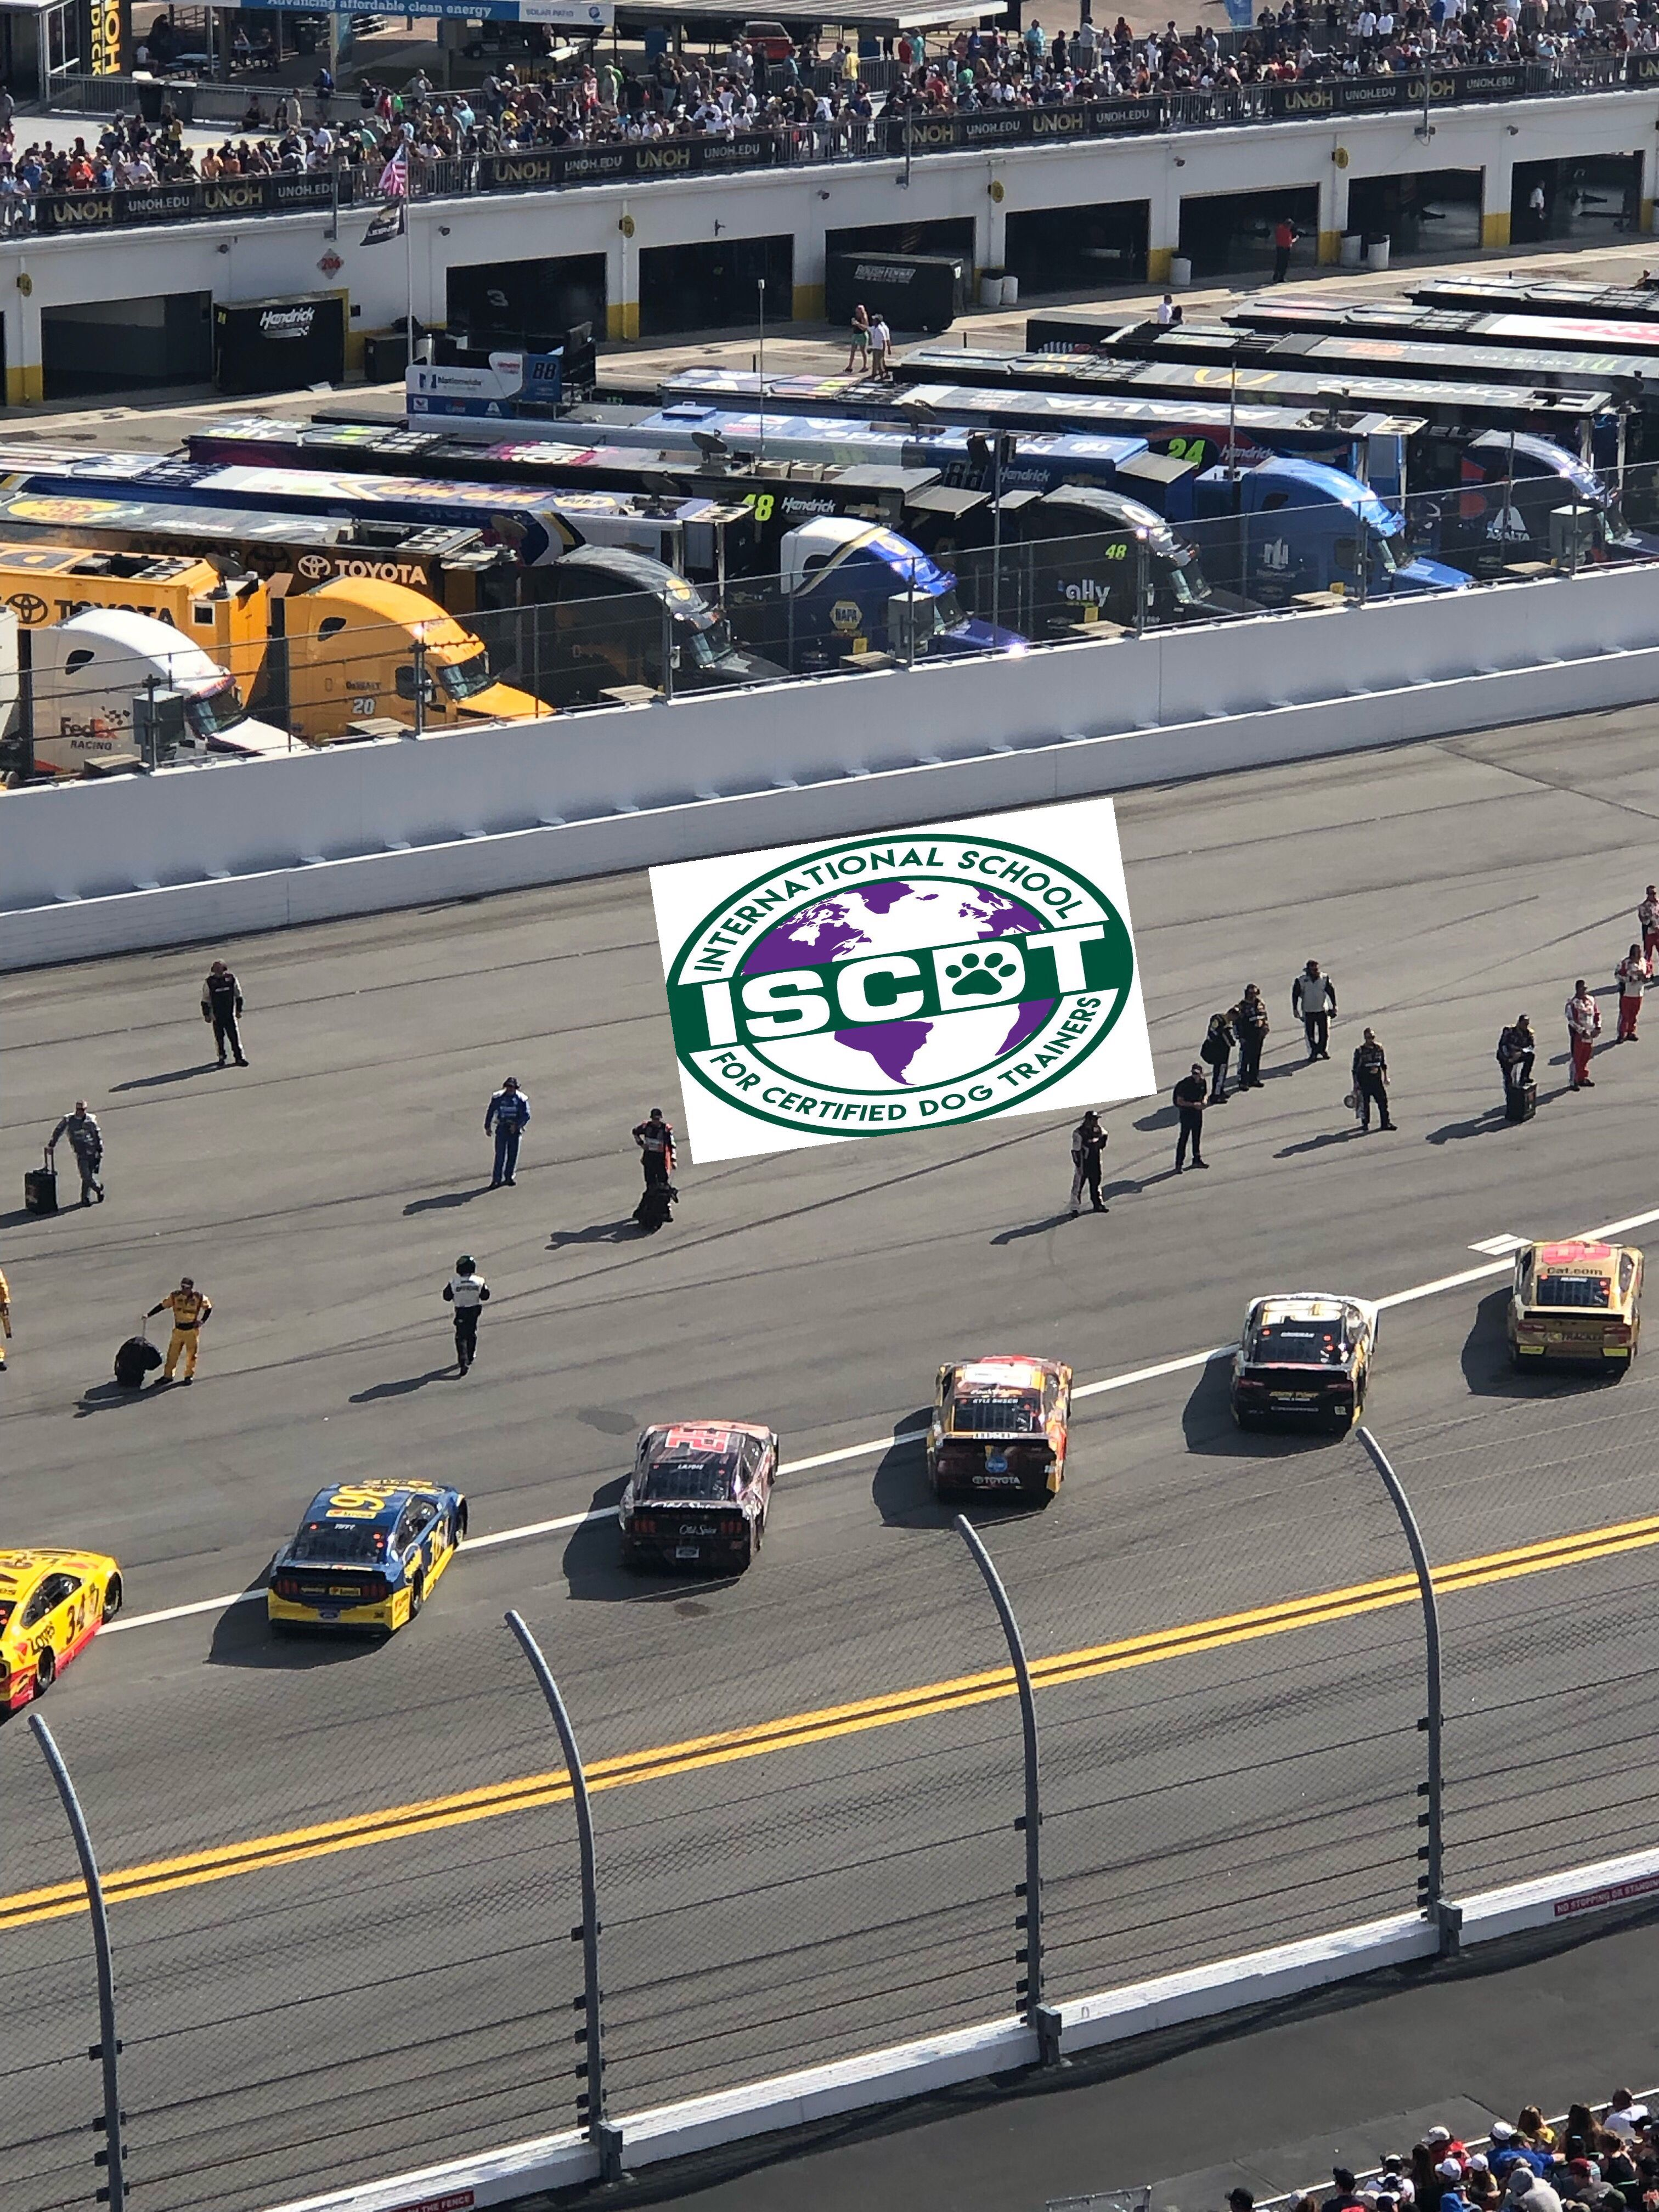 Daytona Dog Track >> Iscdt Is At The Daytona 500 On This Beautiful Sunday We Are